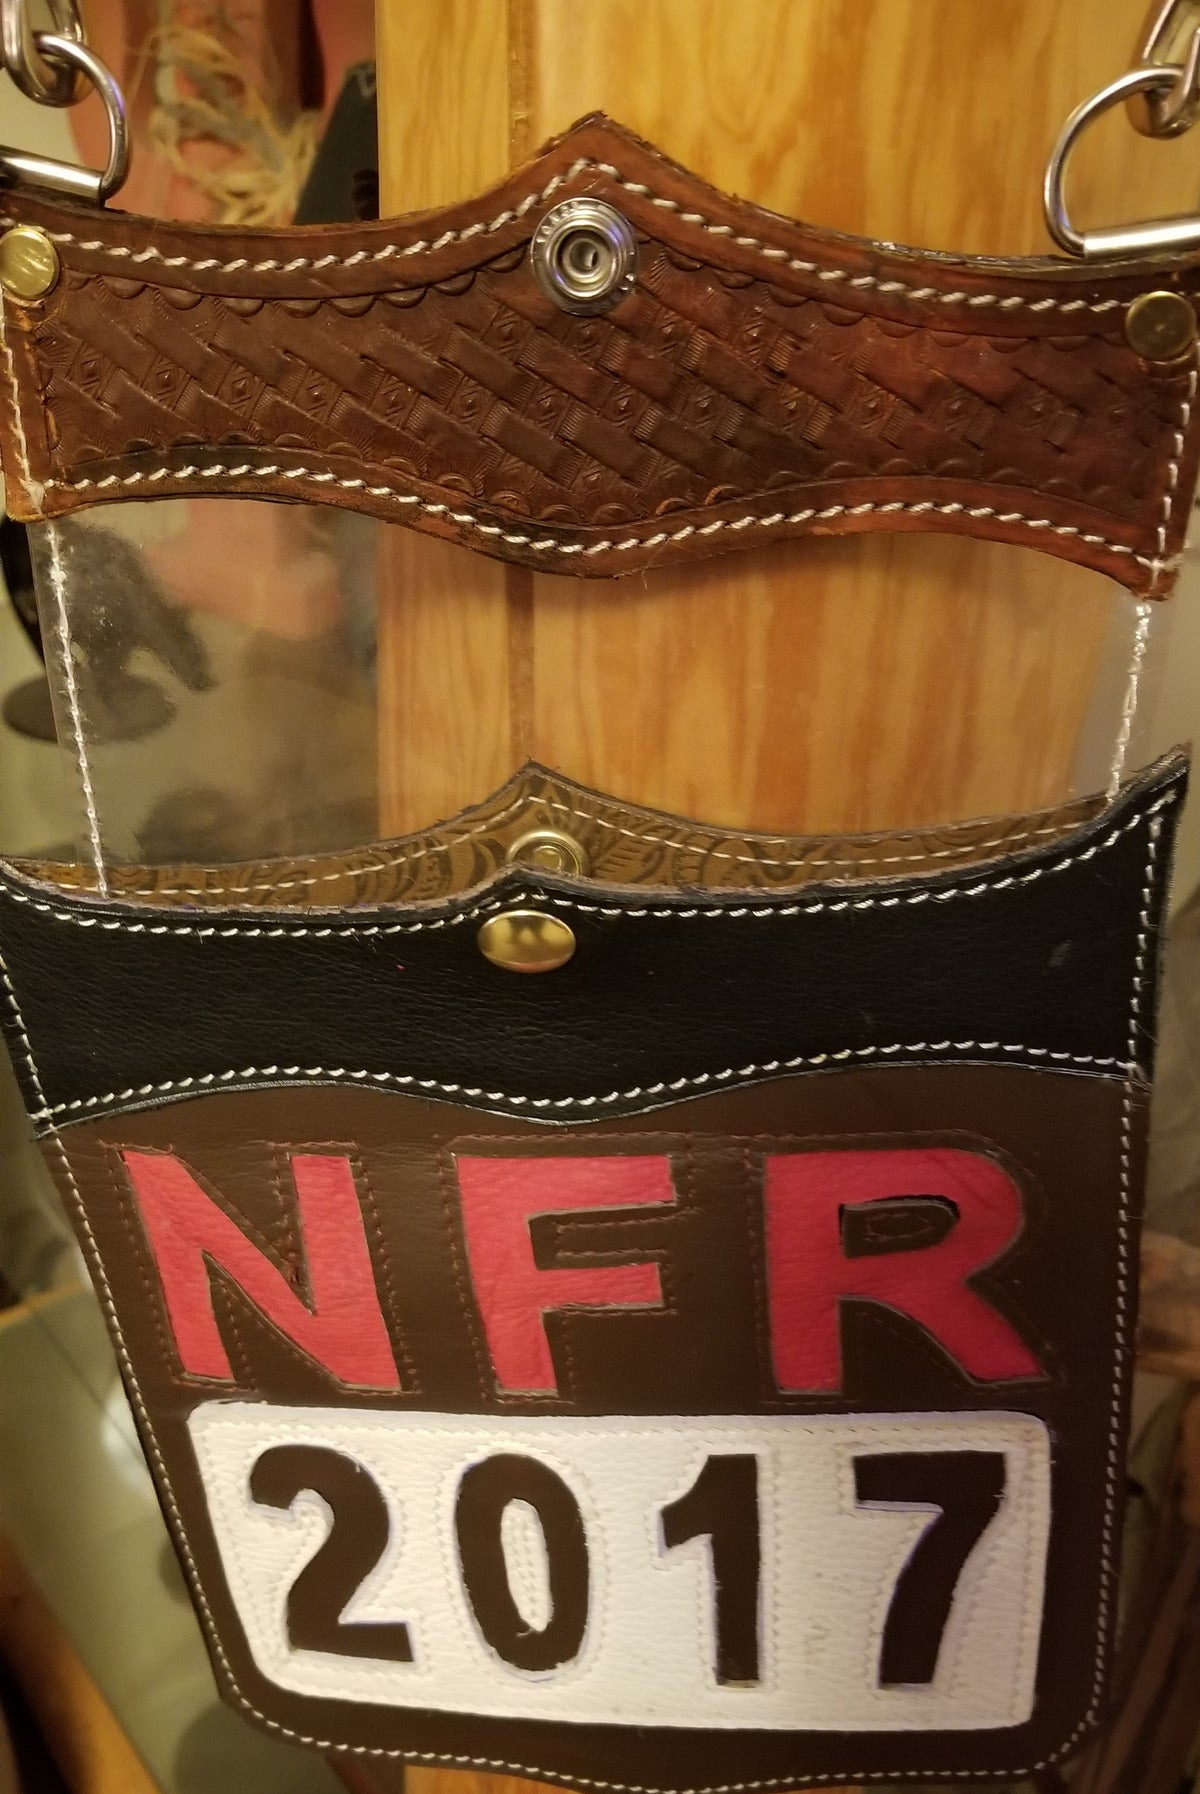 Back Number Purse